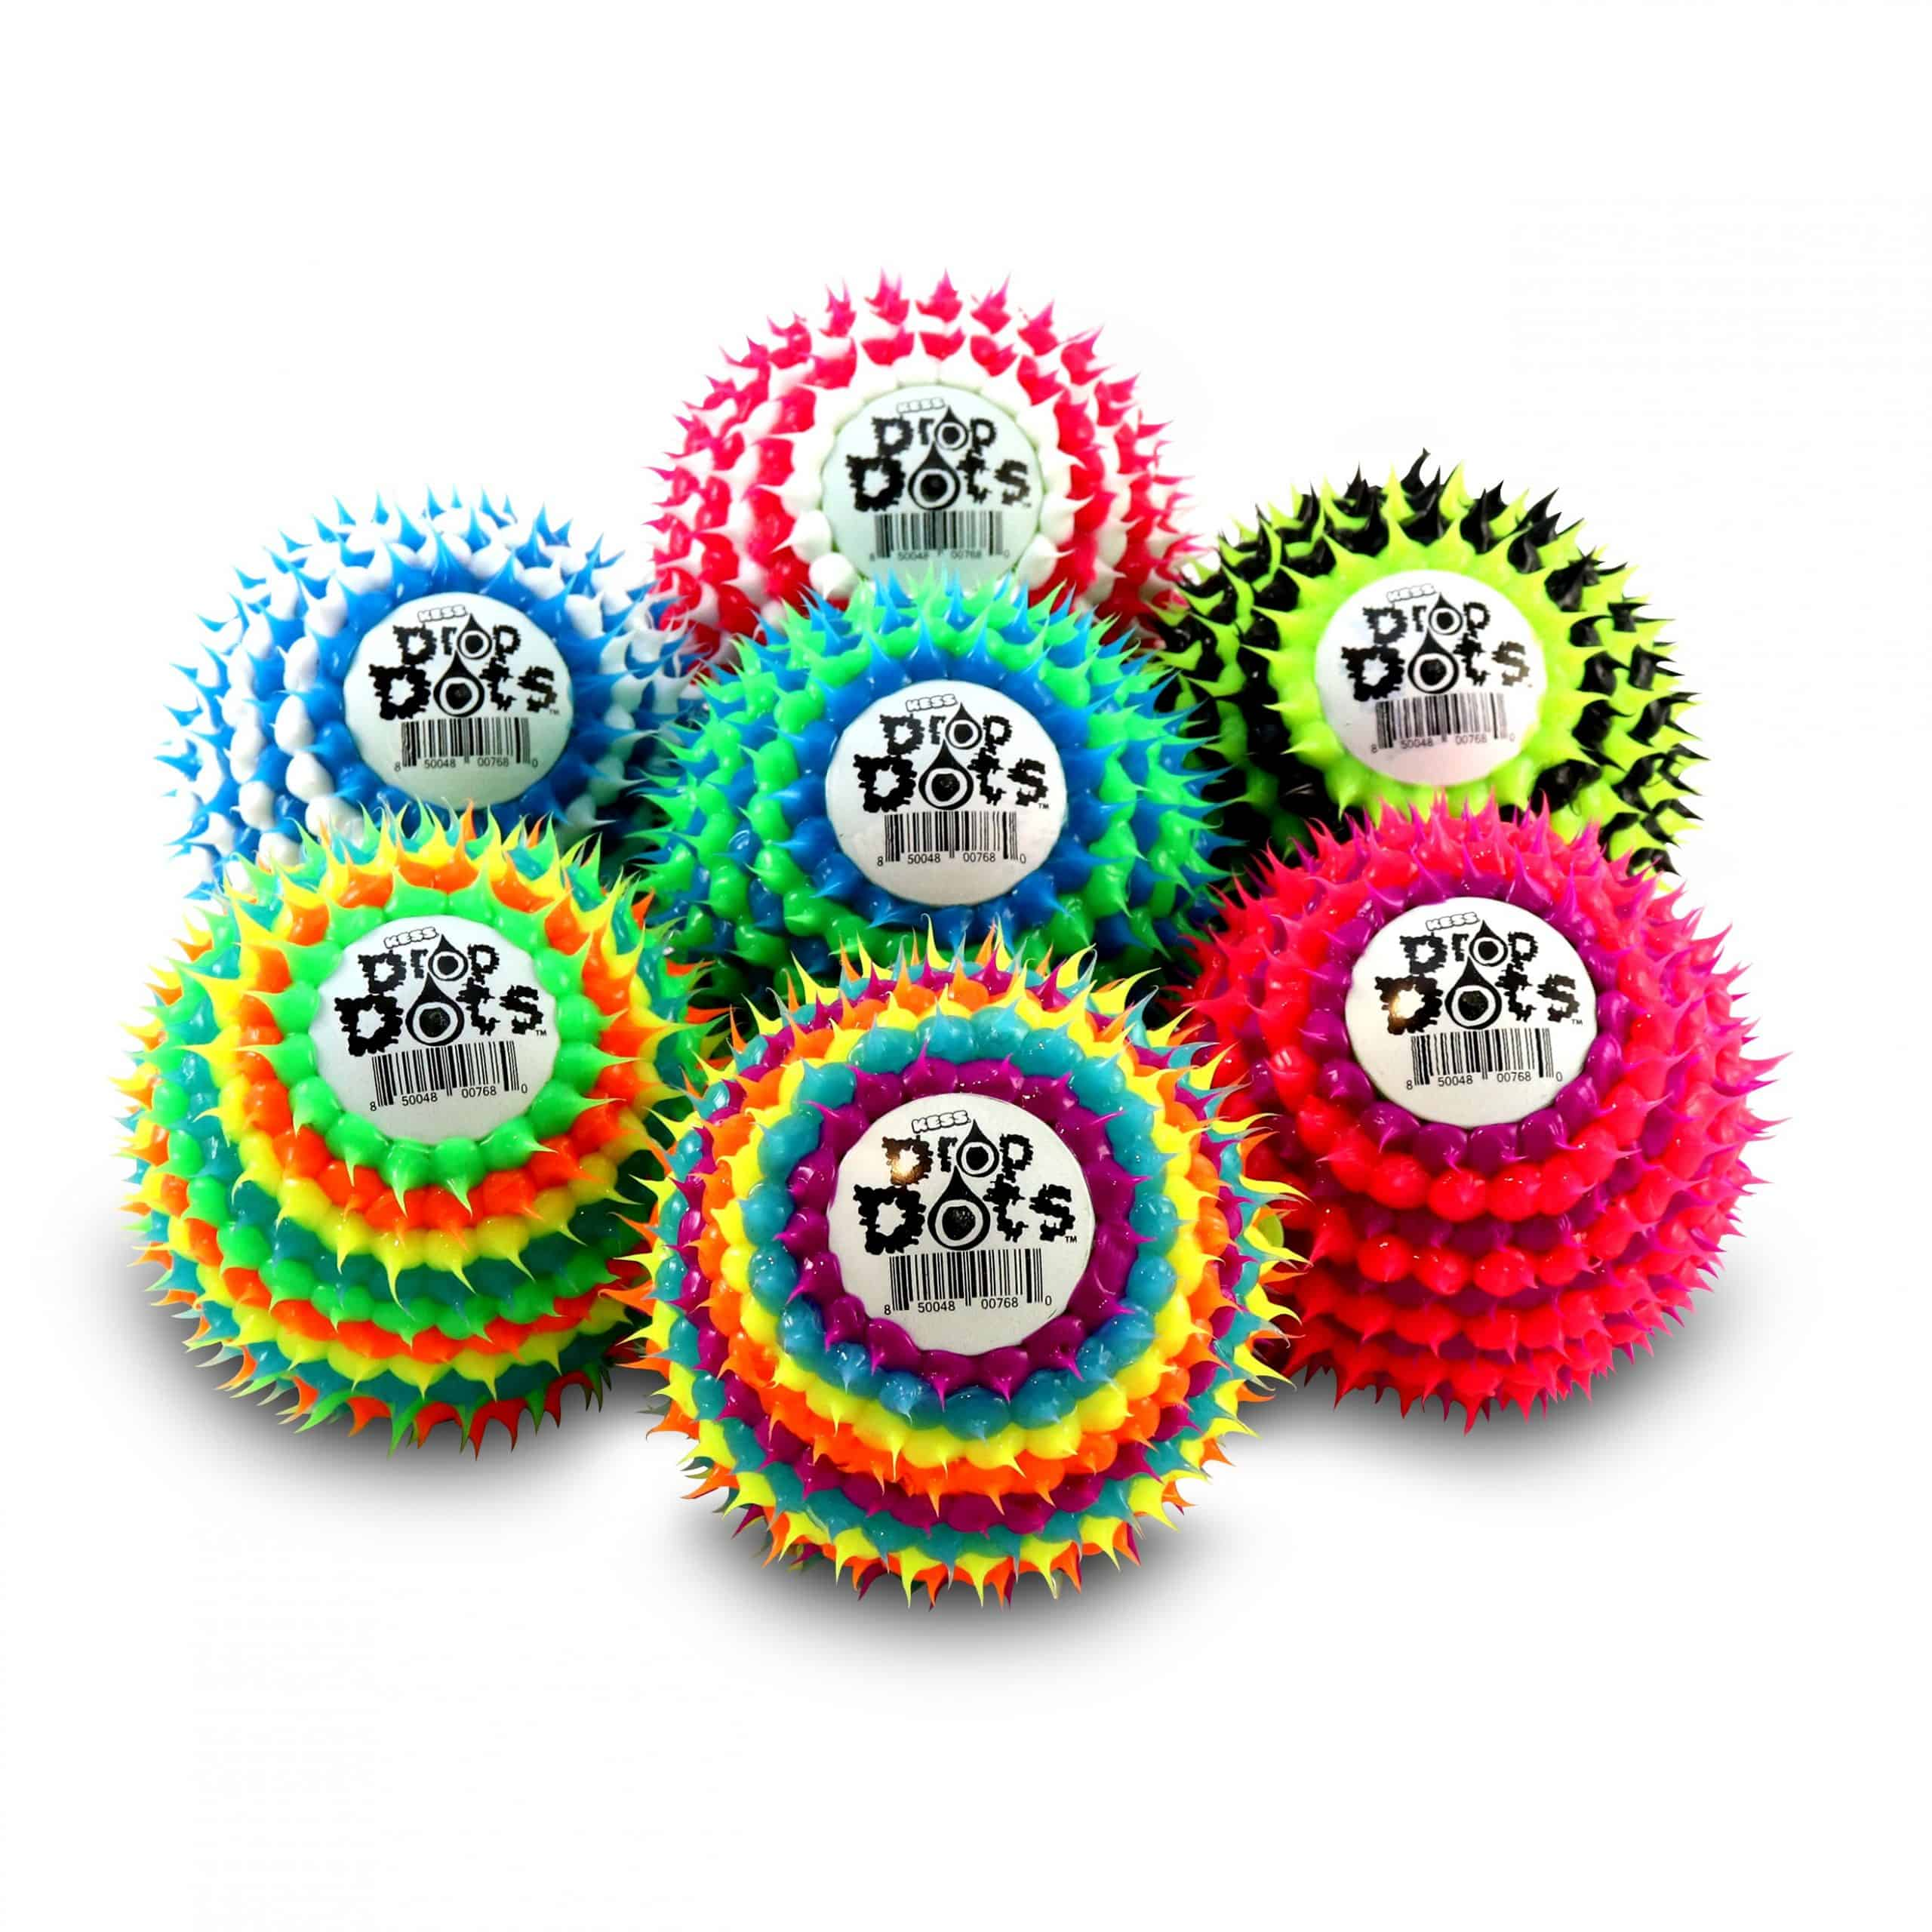 Drop dots toy balls in variety of colors